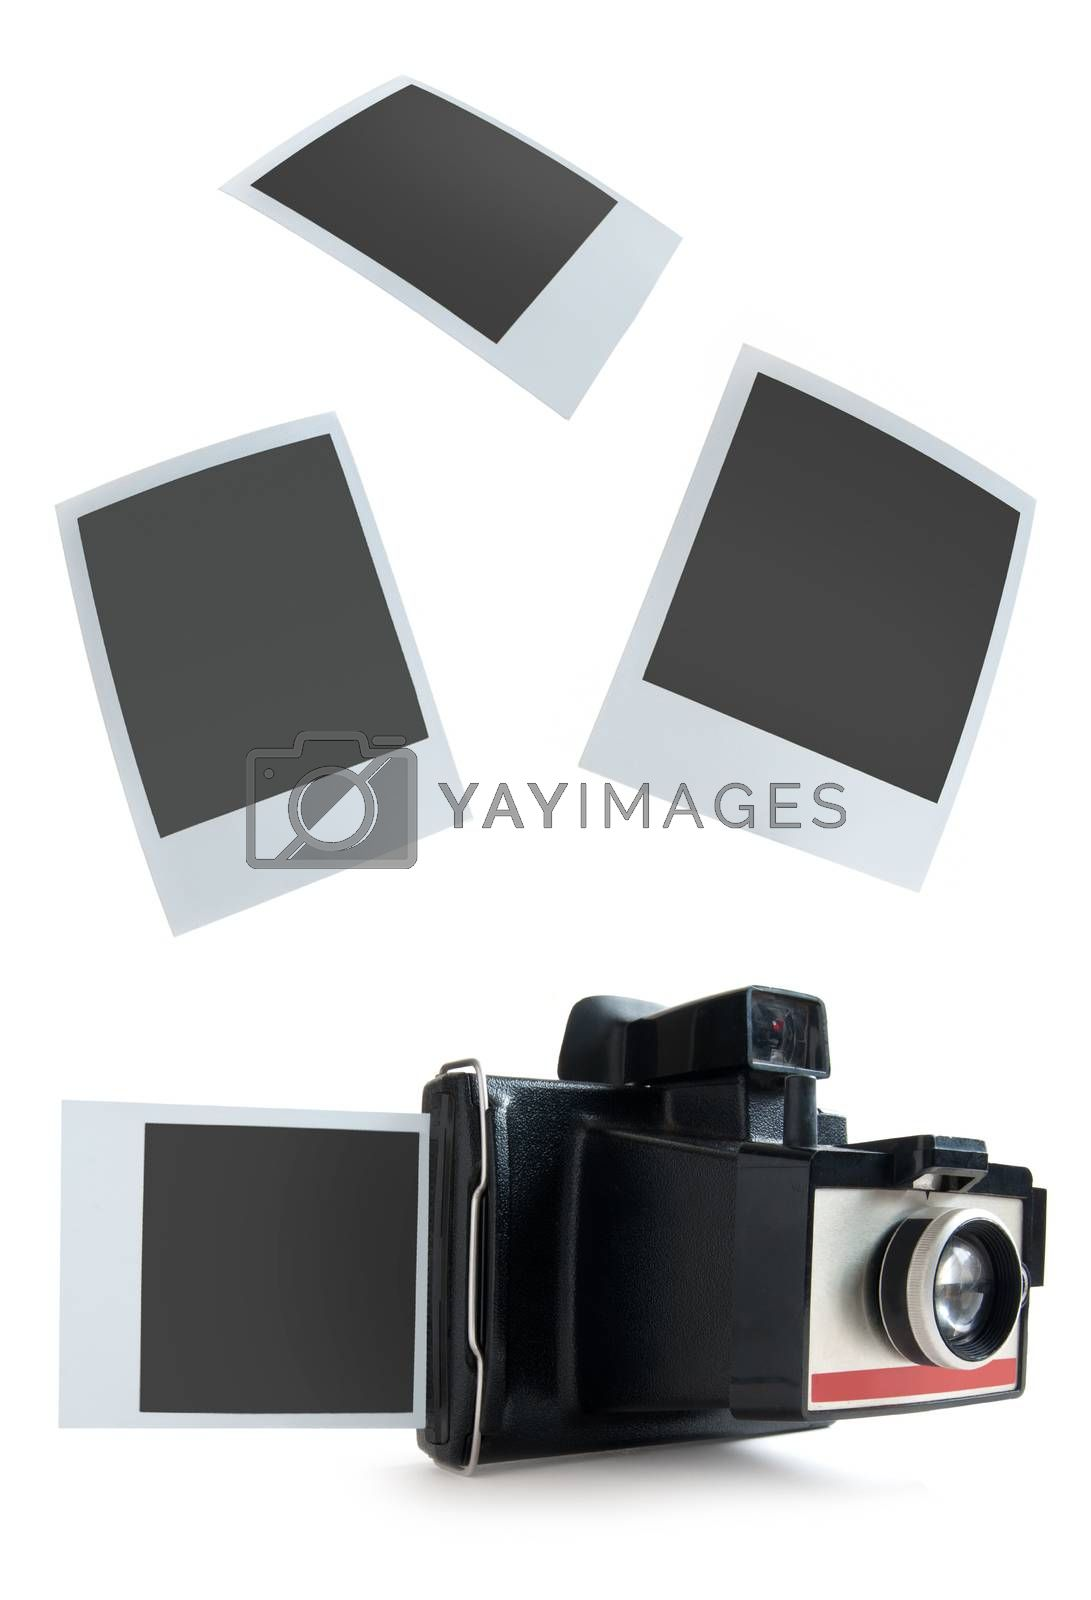 Royalty free image of Instant camera photos by unikpix